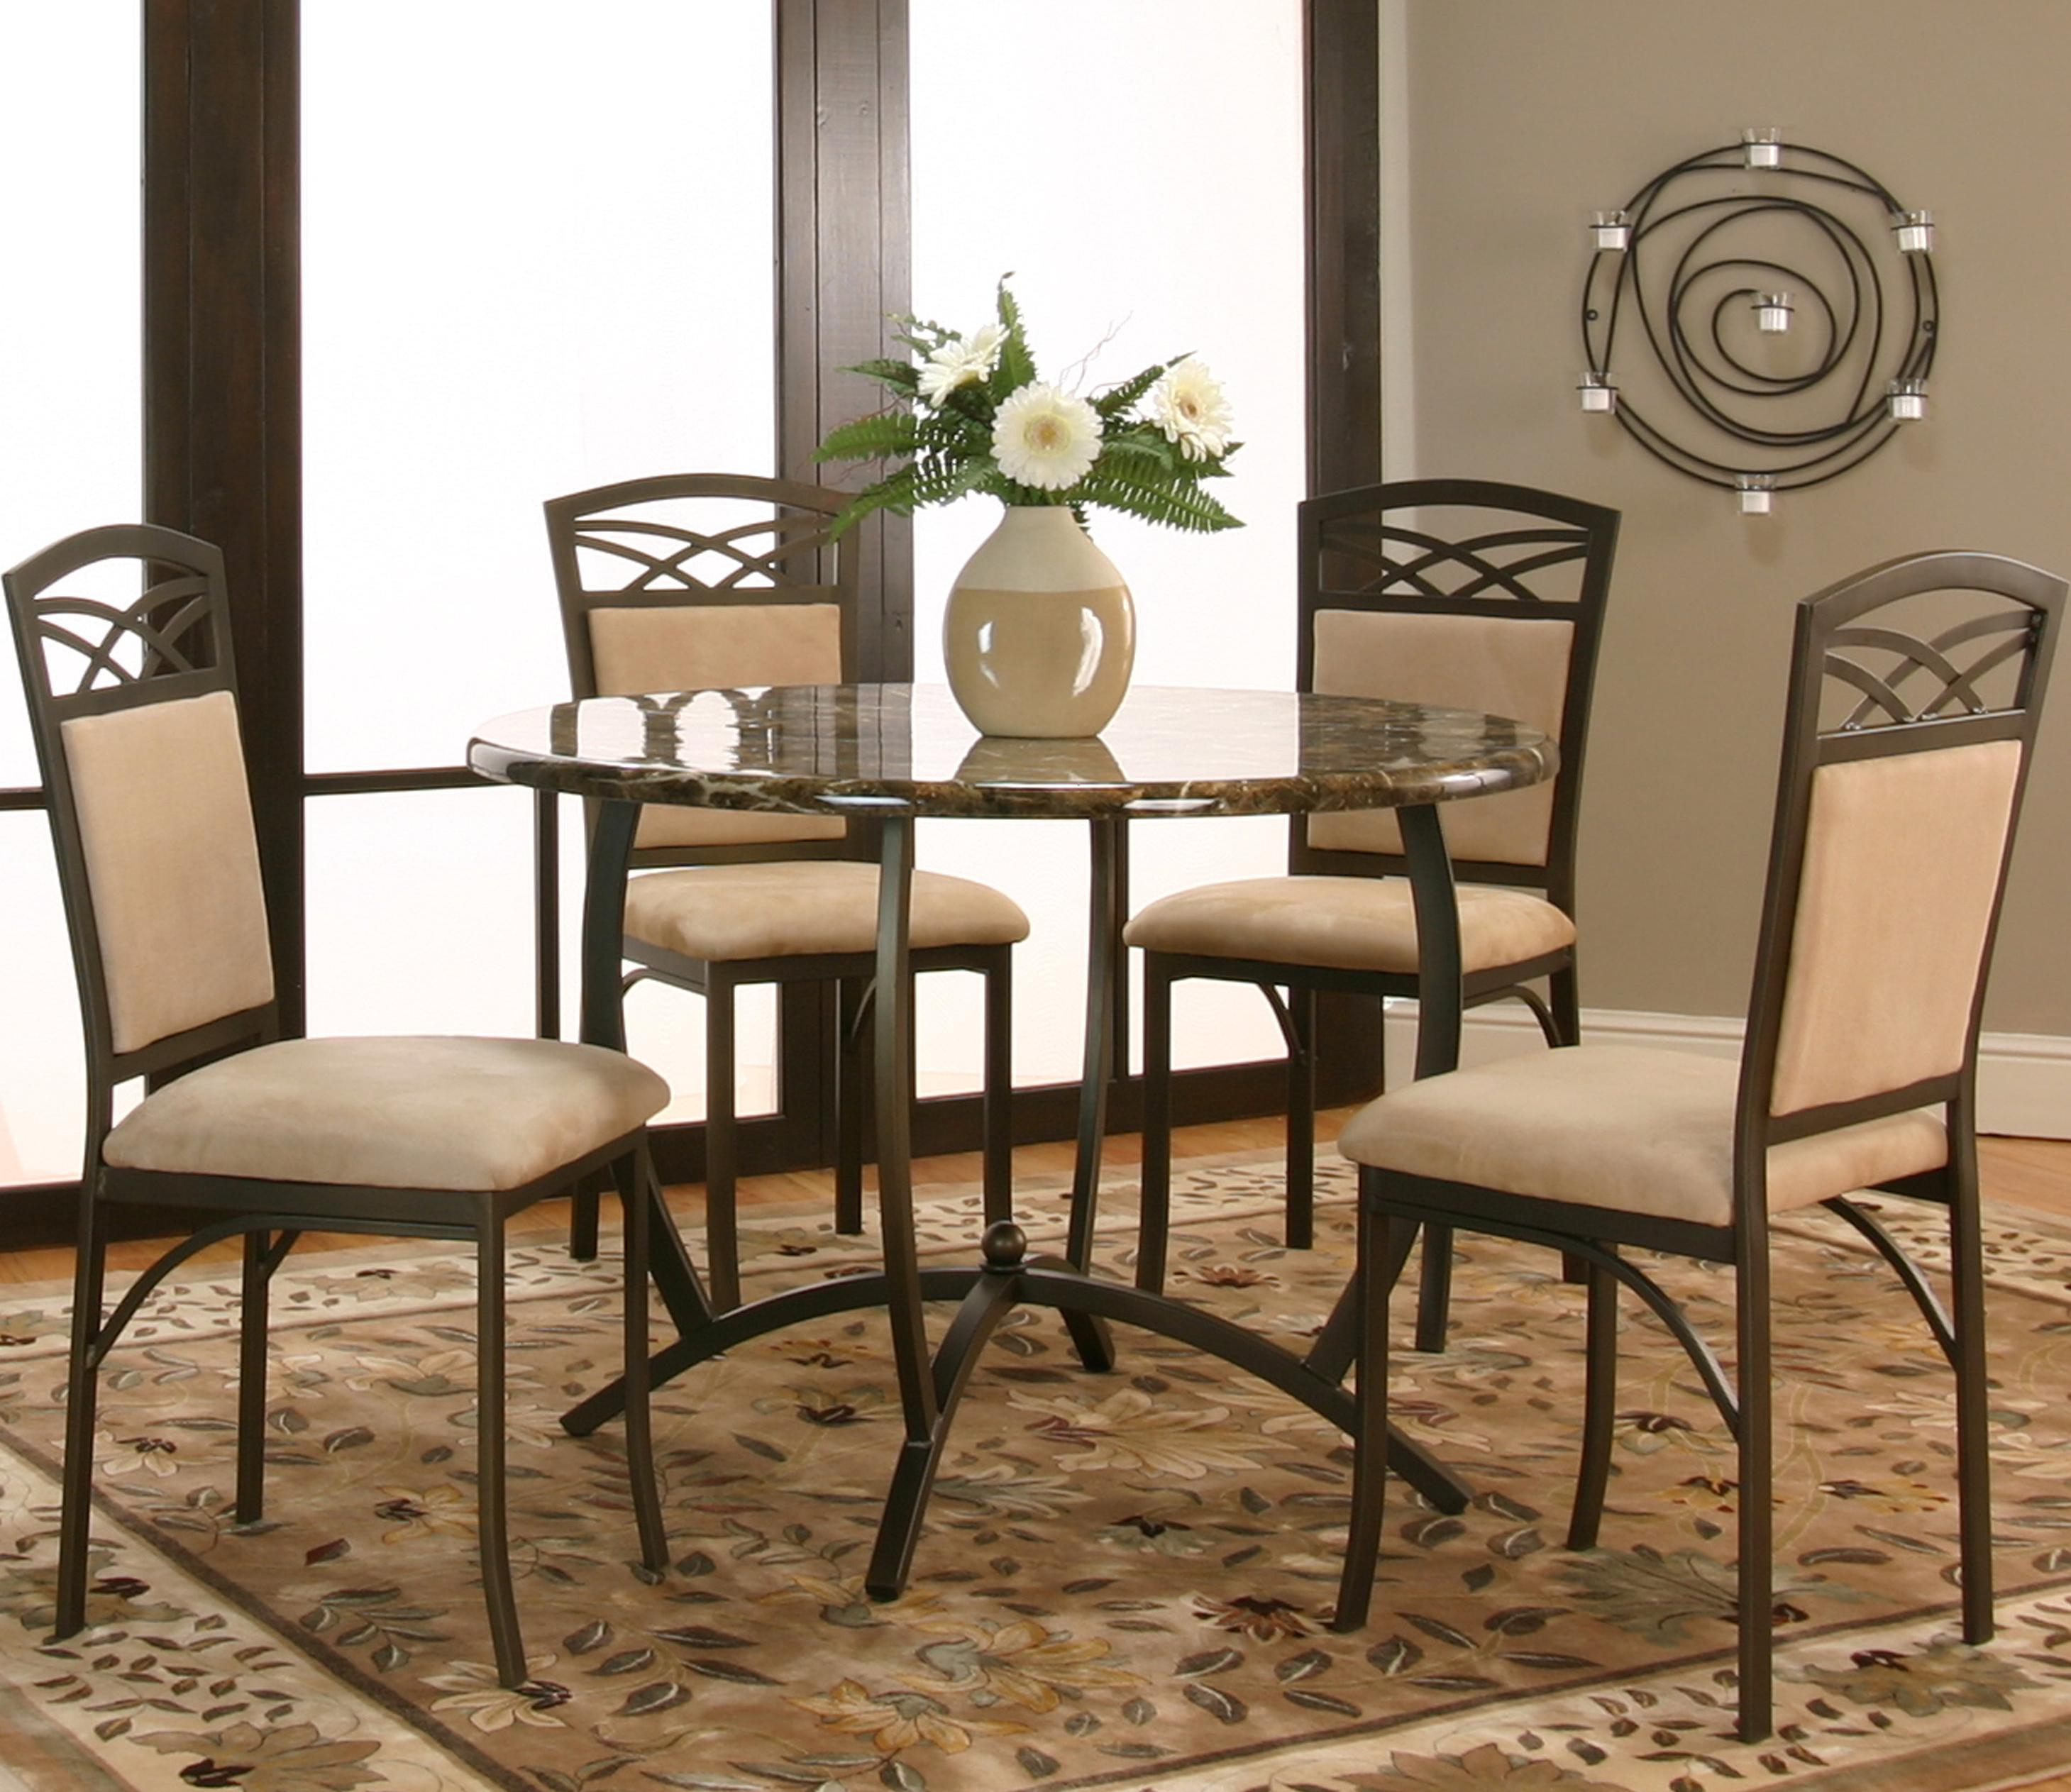 Cramco  Inc Atlas 5 Piece Dining Set   Item Number  72019 54. Cramco  Inc Atlas 5 Piece Table and Chair Set   Value City